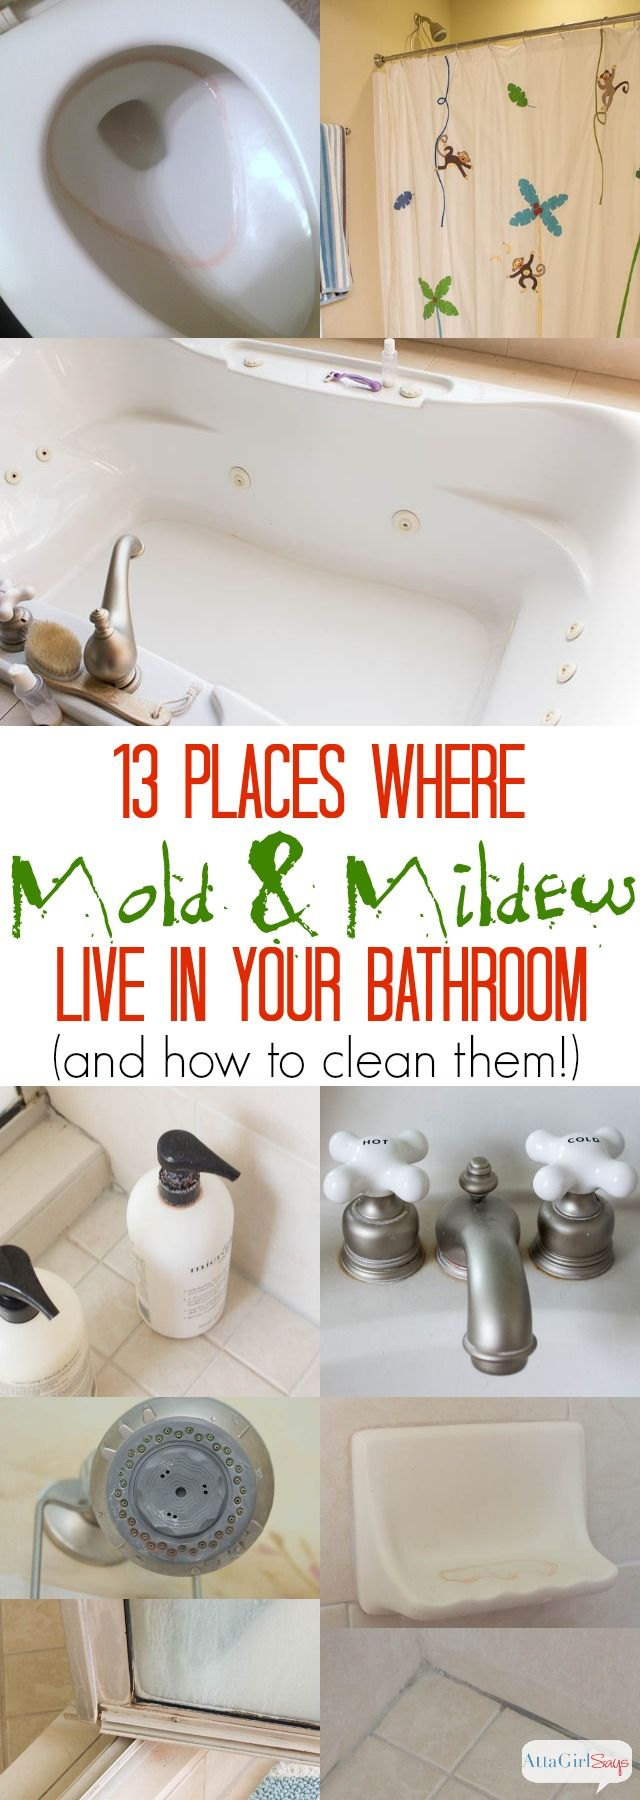 How to clean mold and mildew in the bathroom without - How to get rid of surface mold in bathroom ...